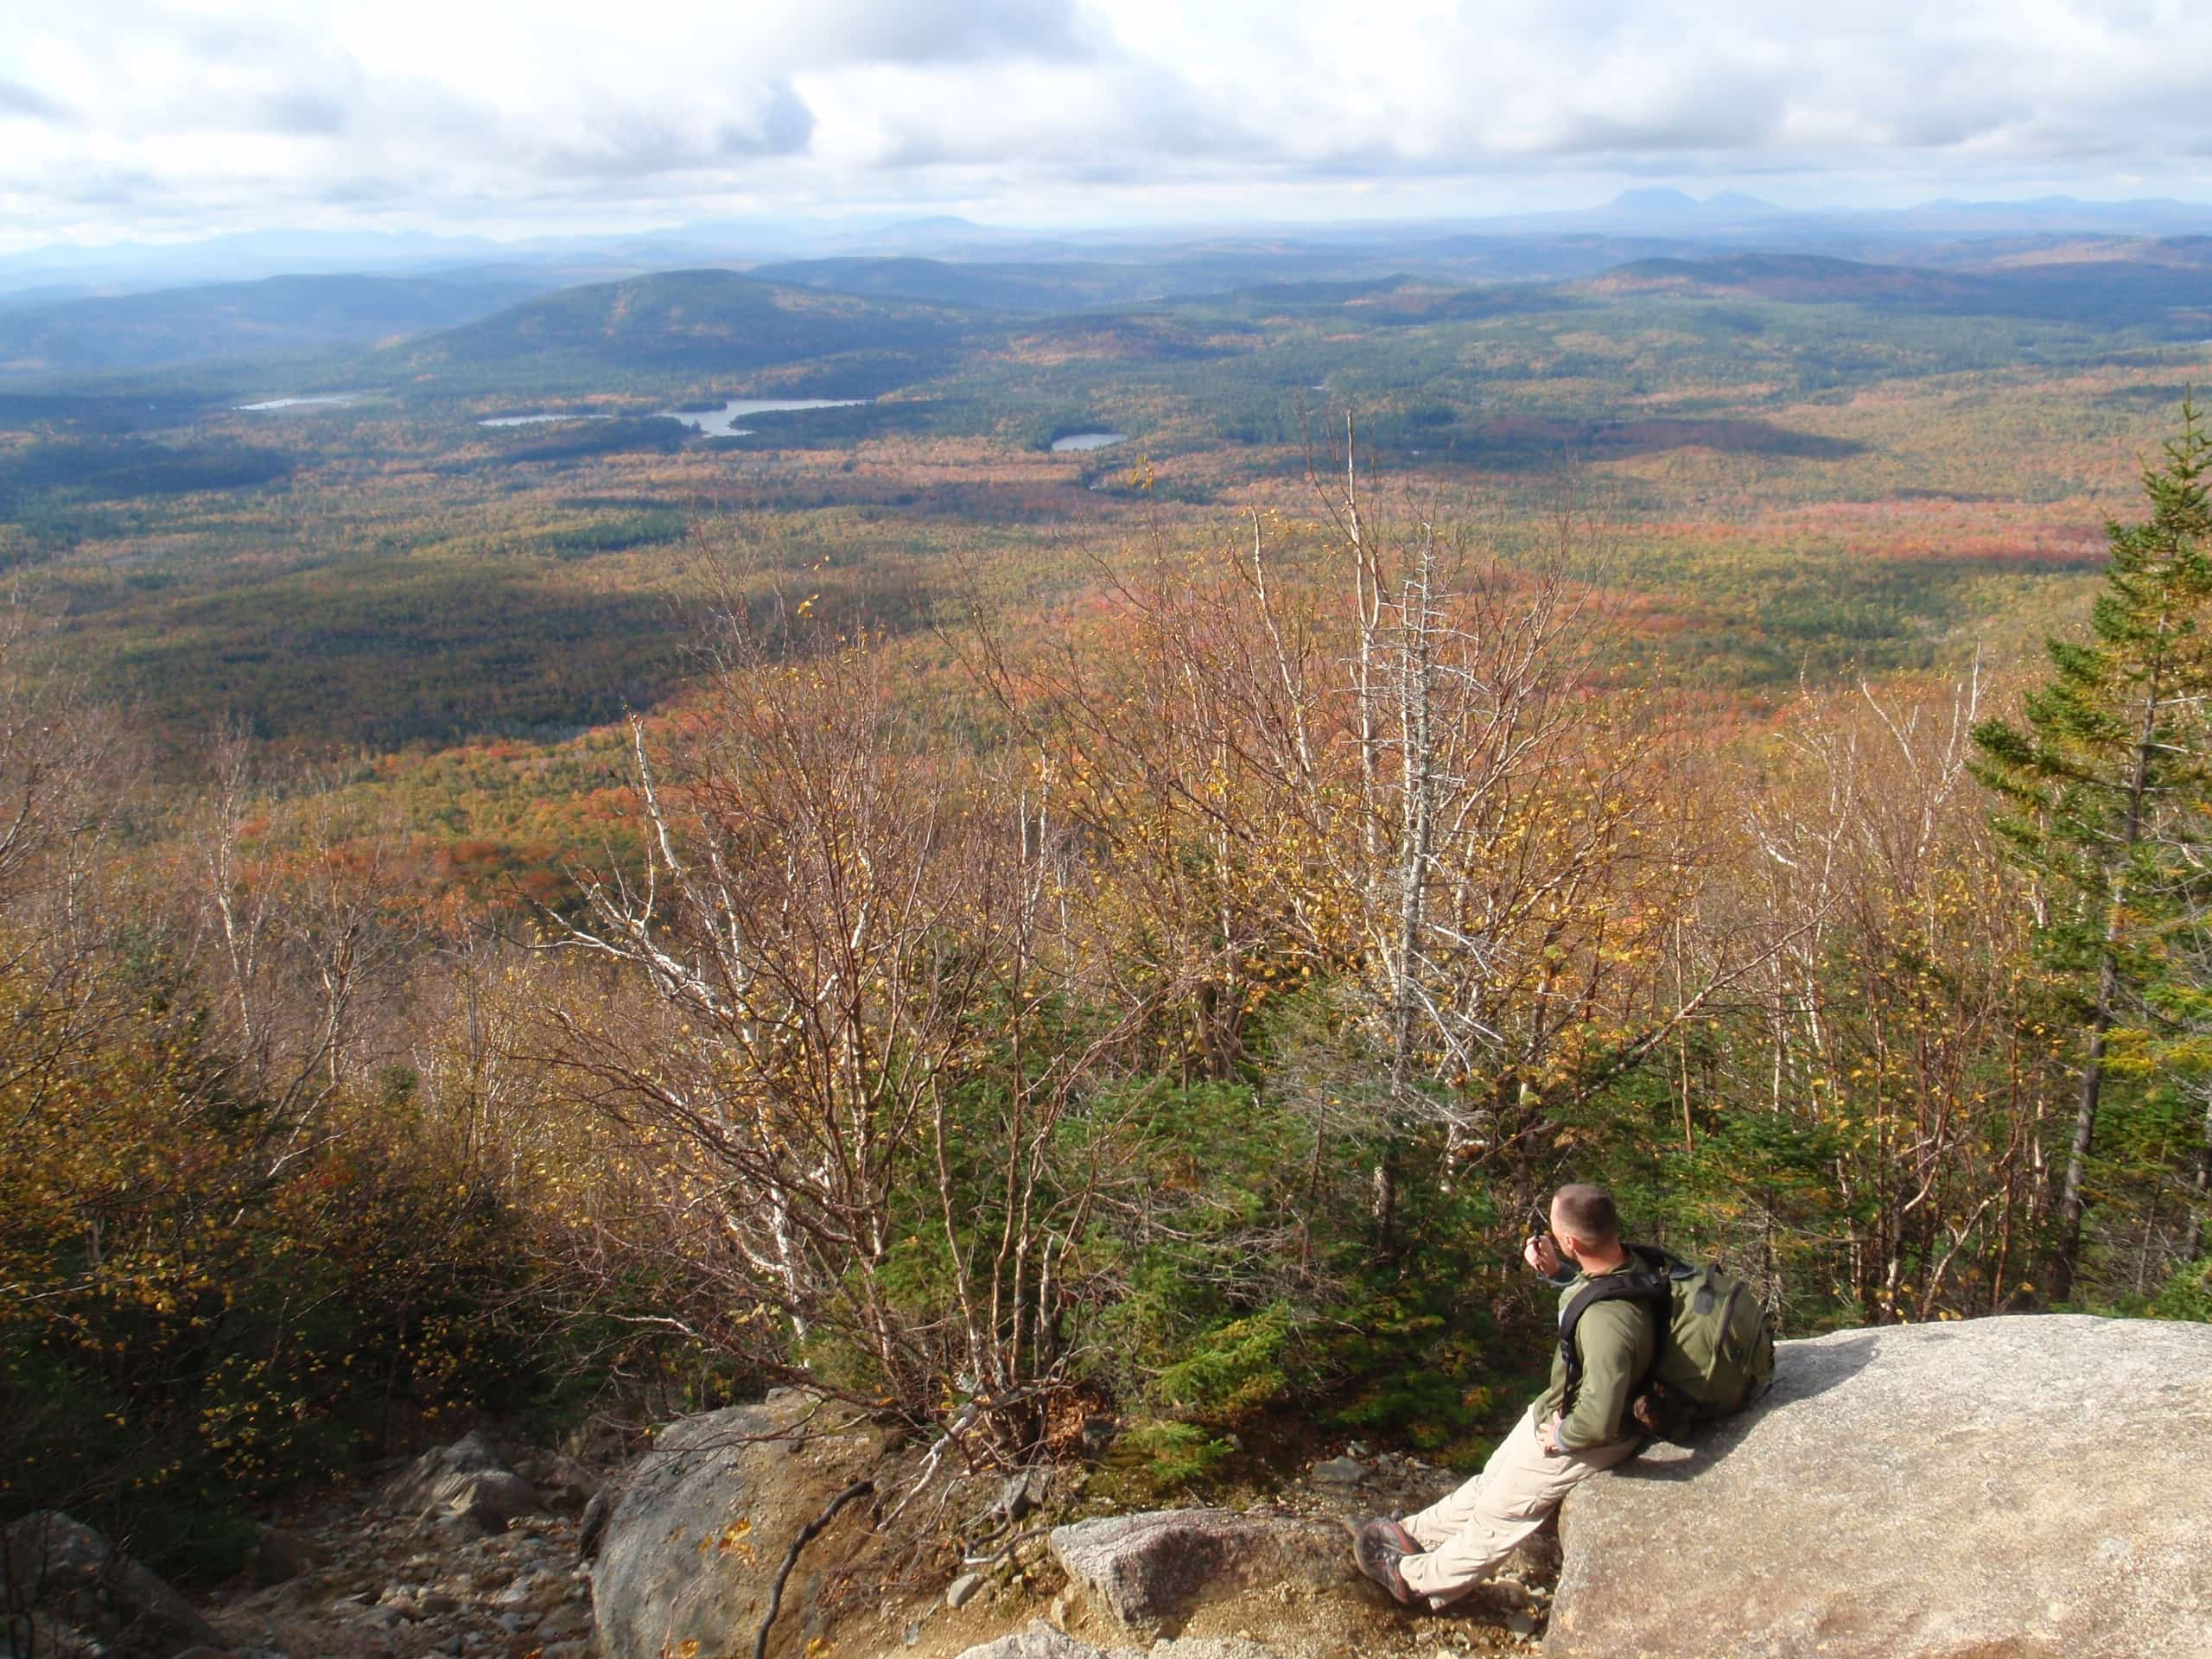 Fall Foliage in ME - What a Sight to Behold